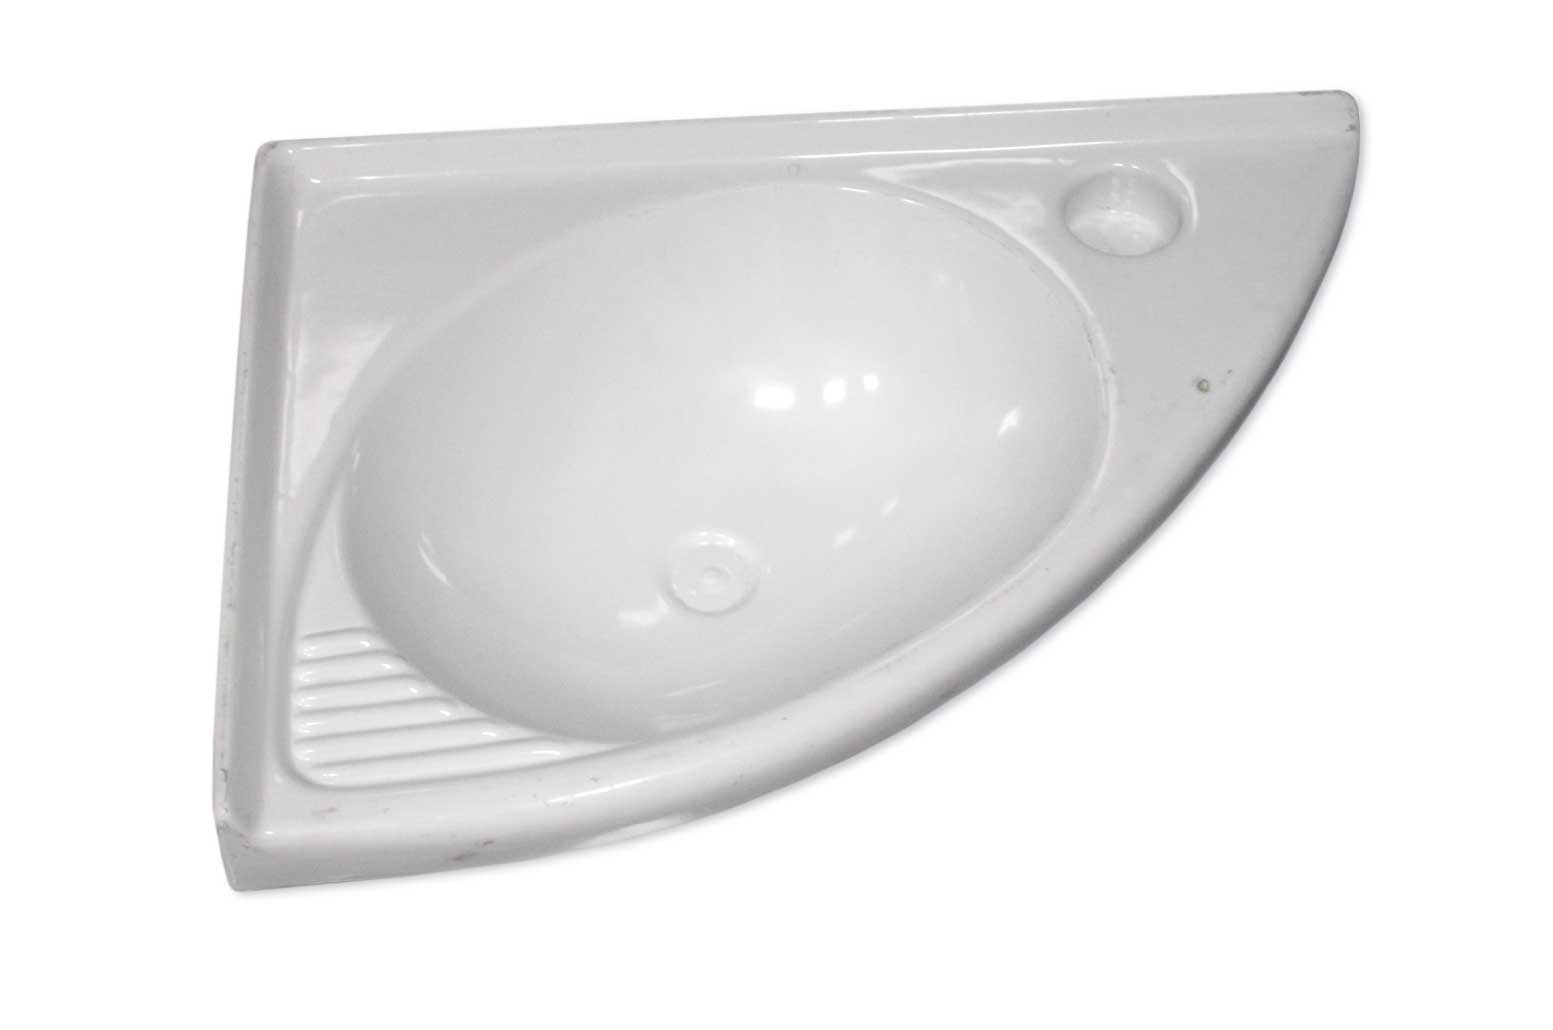 bathroom fixture_1